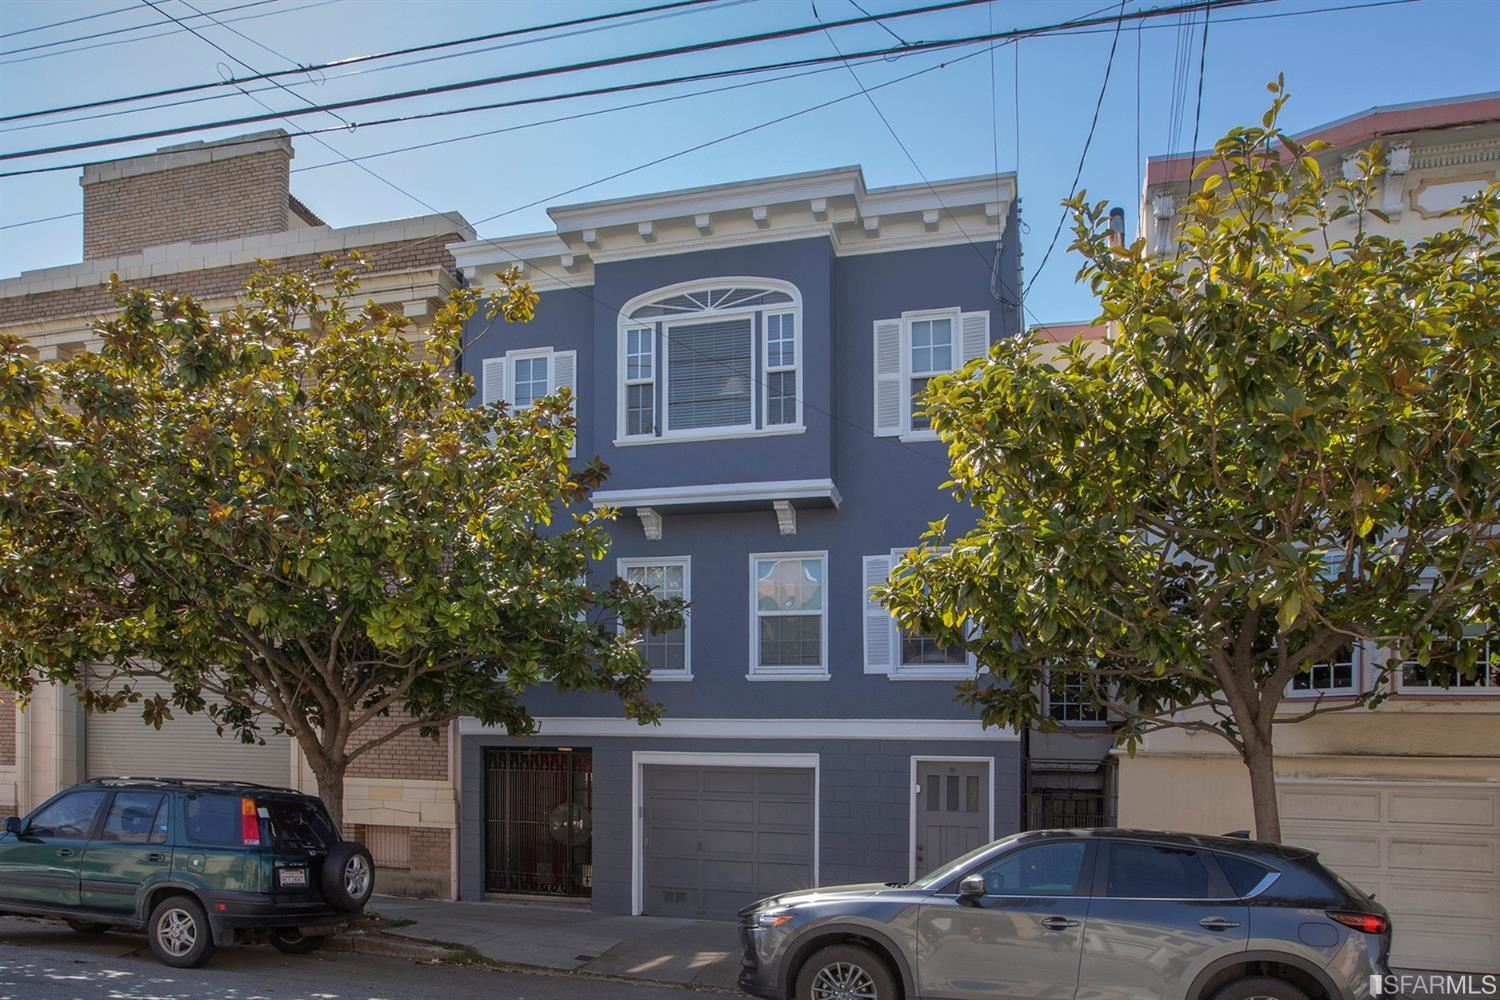 427 8th Avenue, San Francisco, CA 94118 - #: 421539986